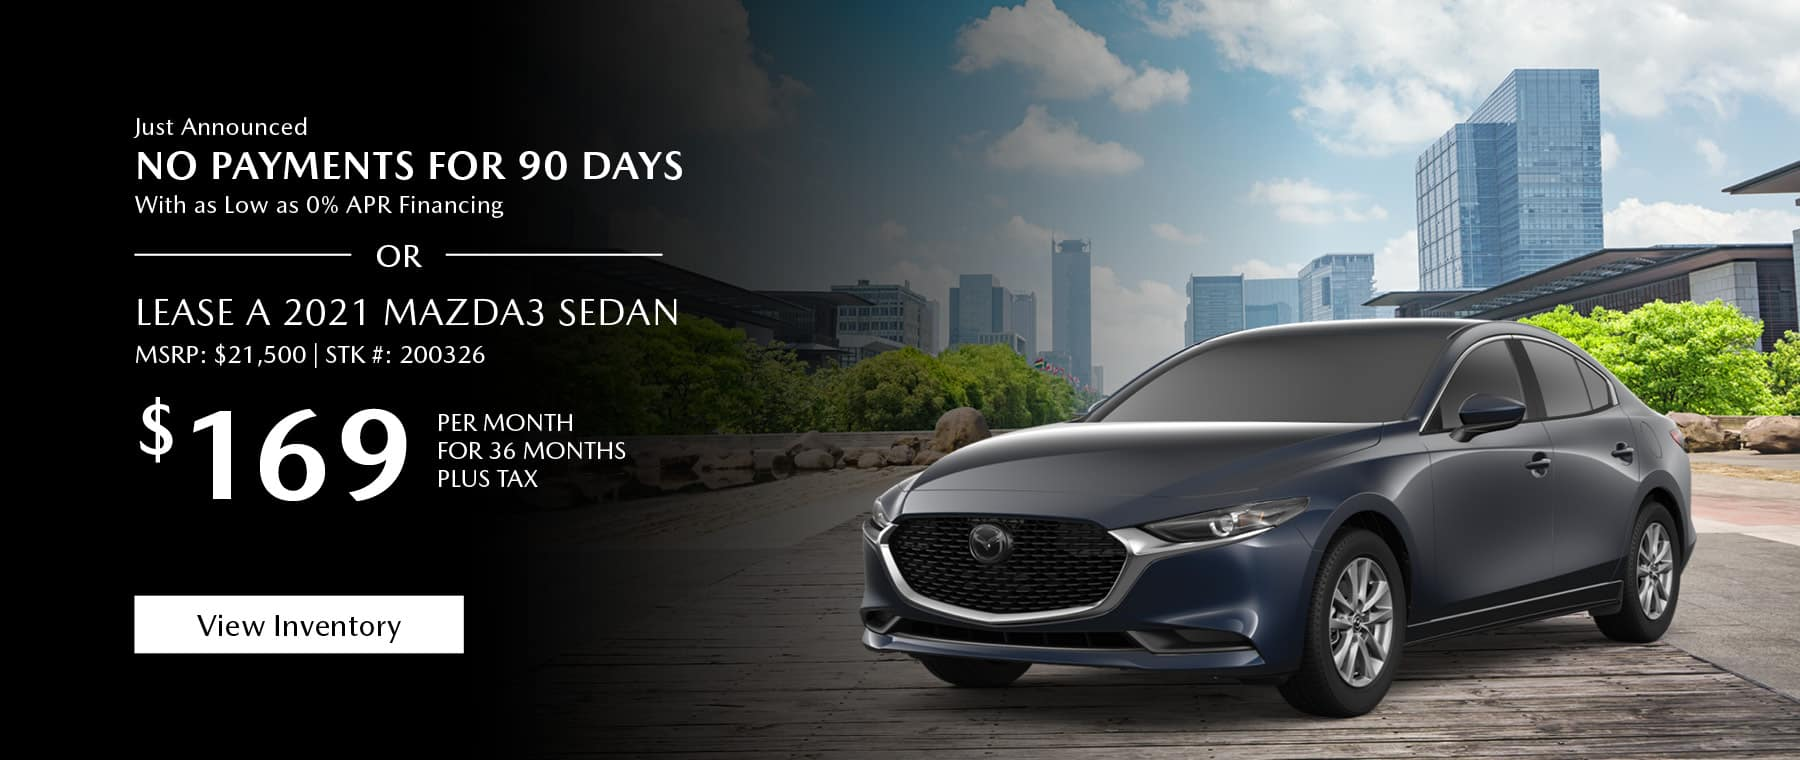 Just Announced, No payments for 90 days with as low as %0 APR financing, or lease the 2021 Mazda3 sedan for $169 per month, plus tax for 36 months. Click or tap here to view our inventory.